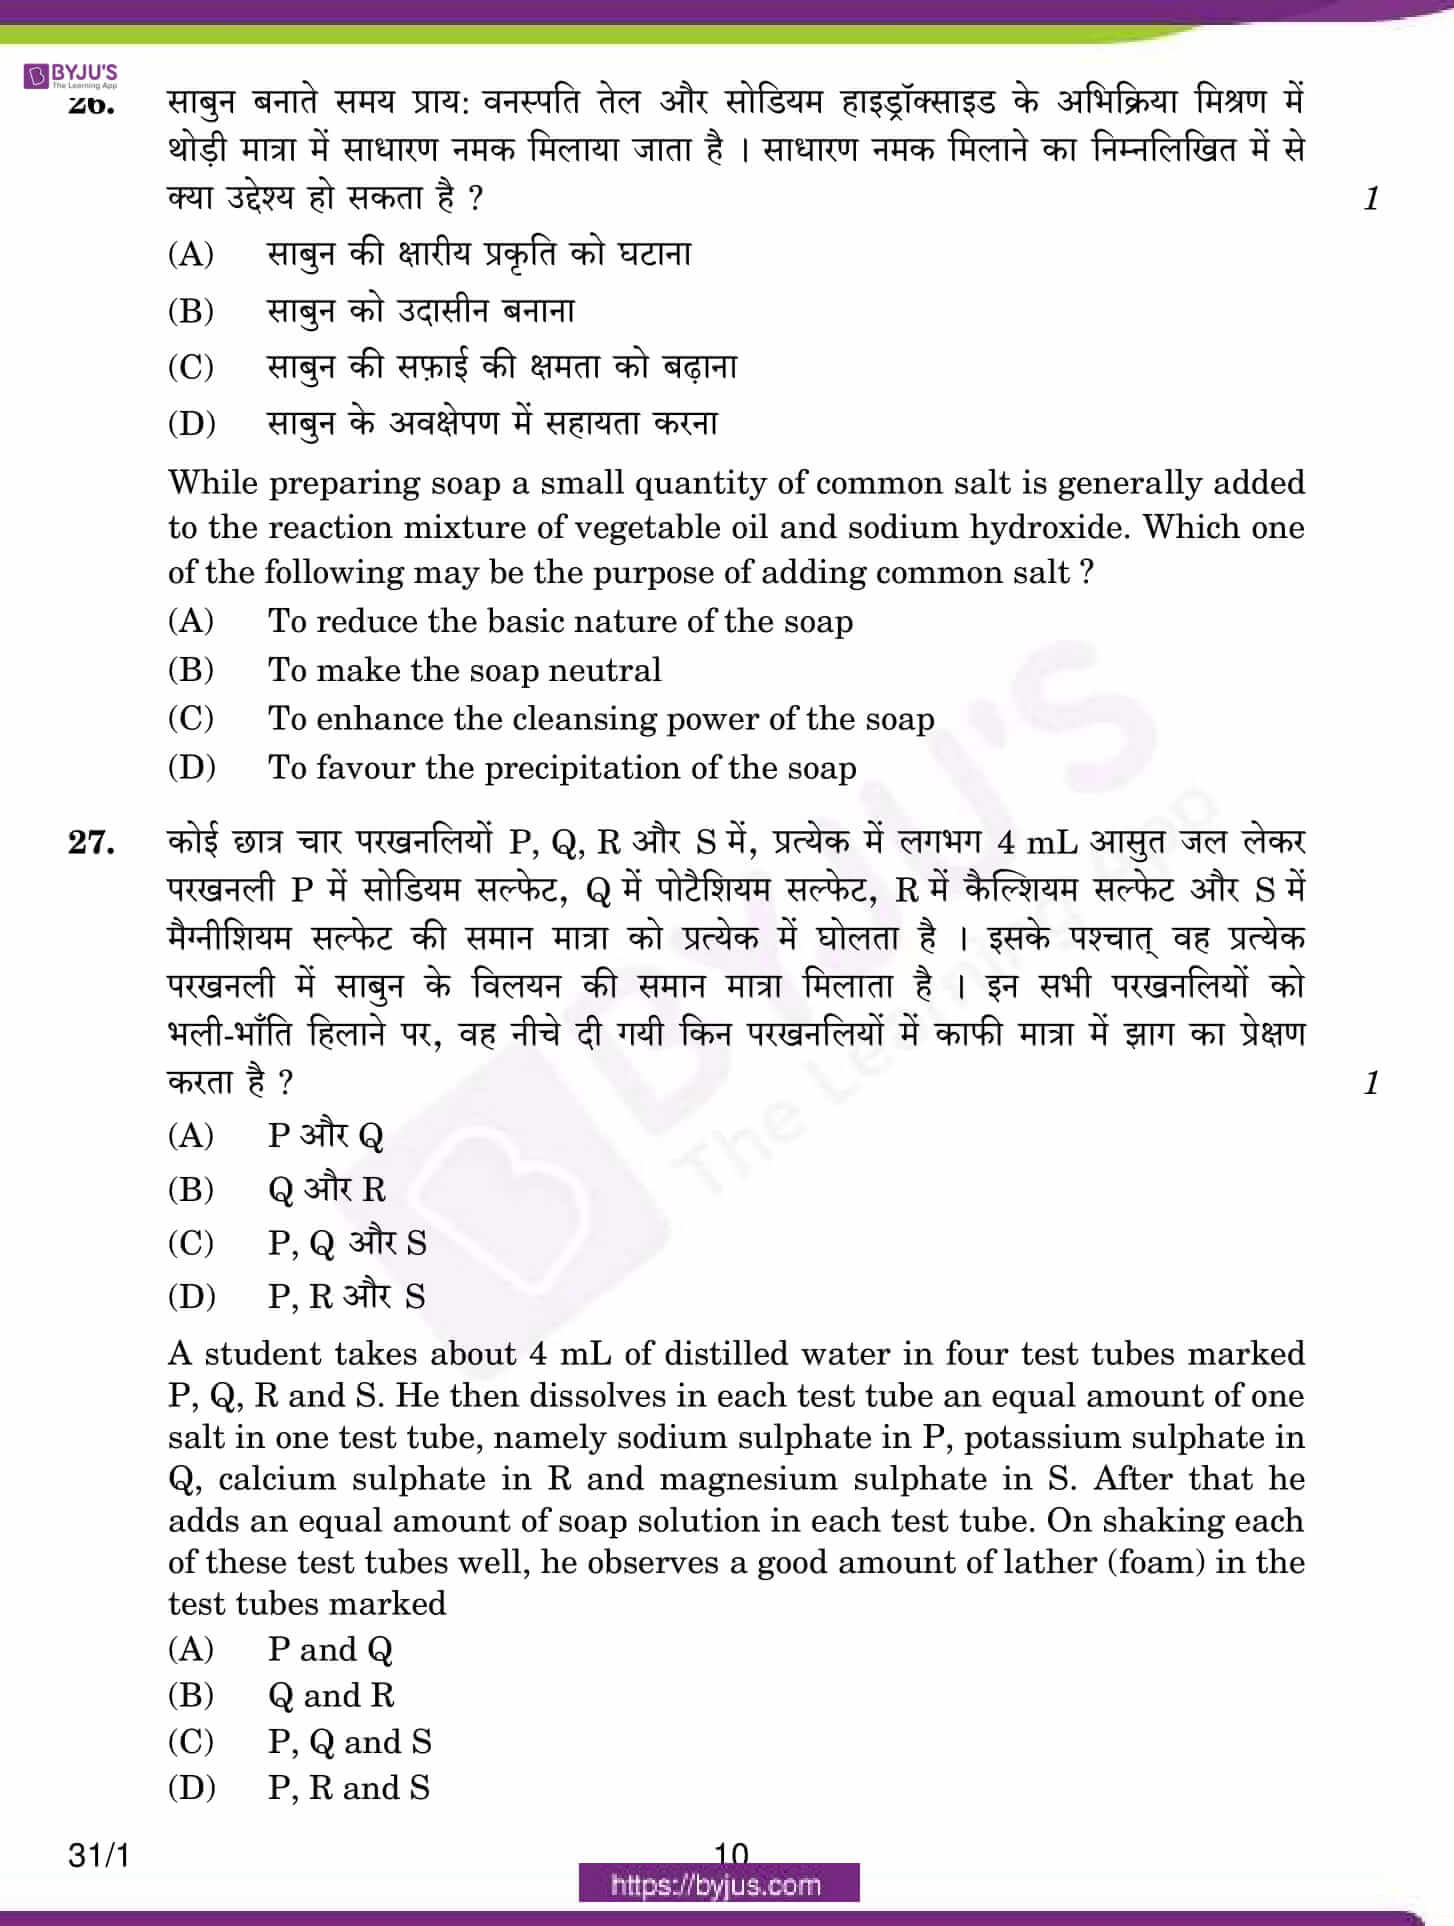 cbse class 10 science question paper 2015